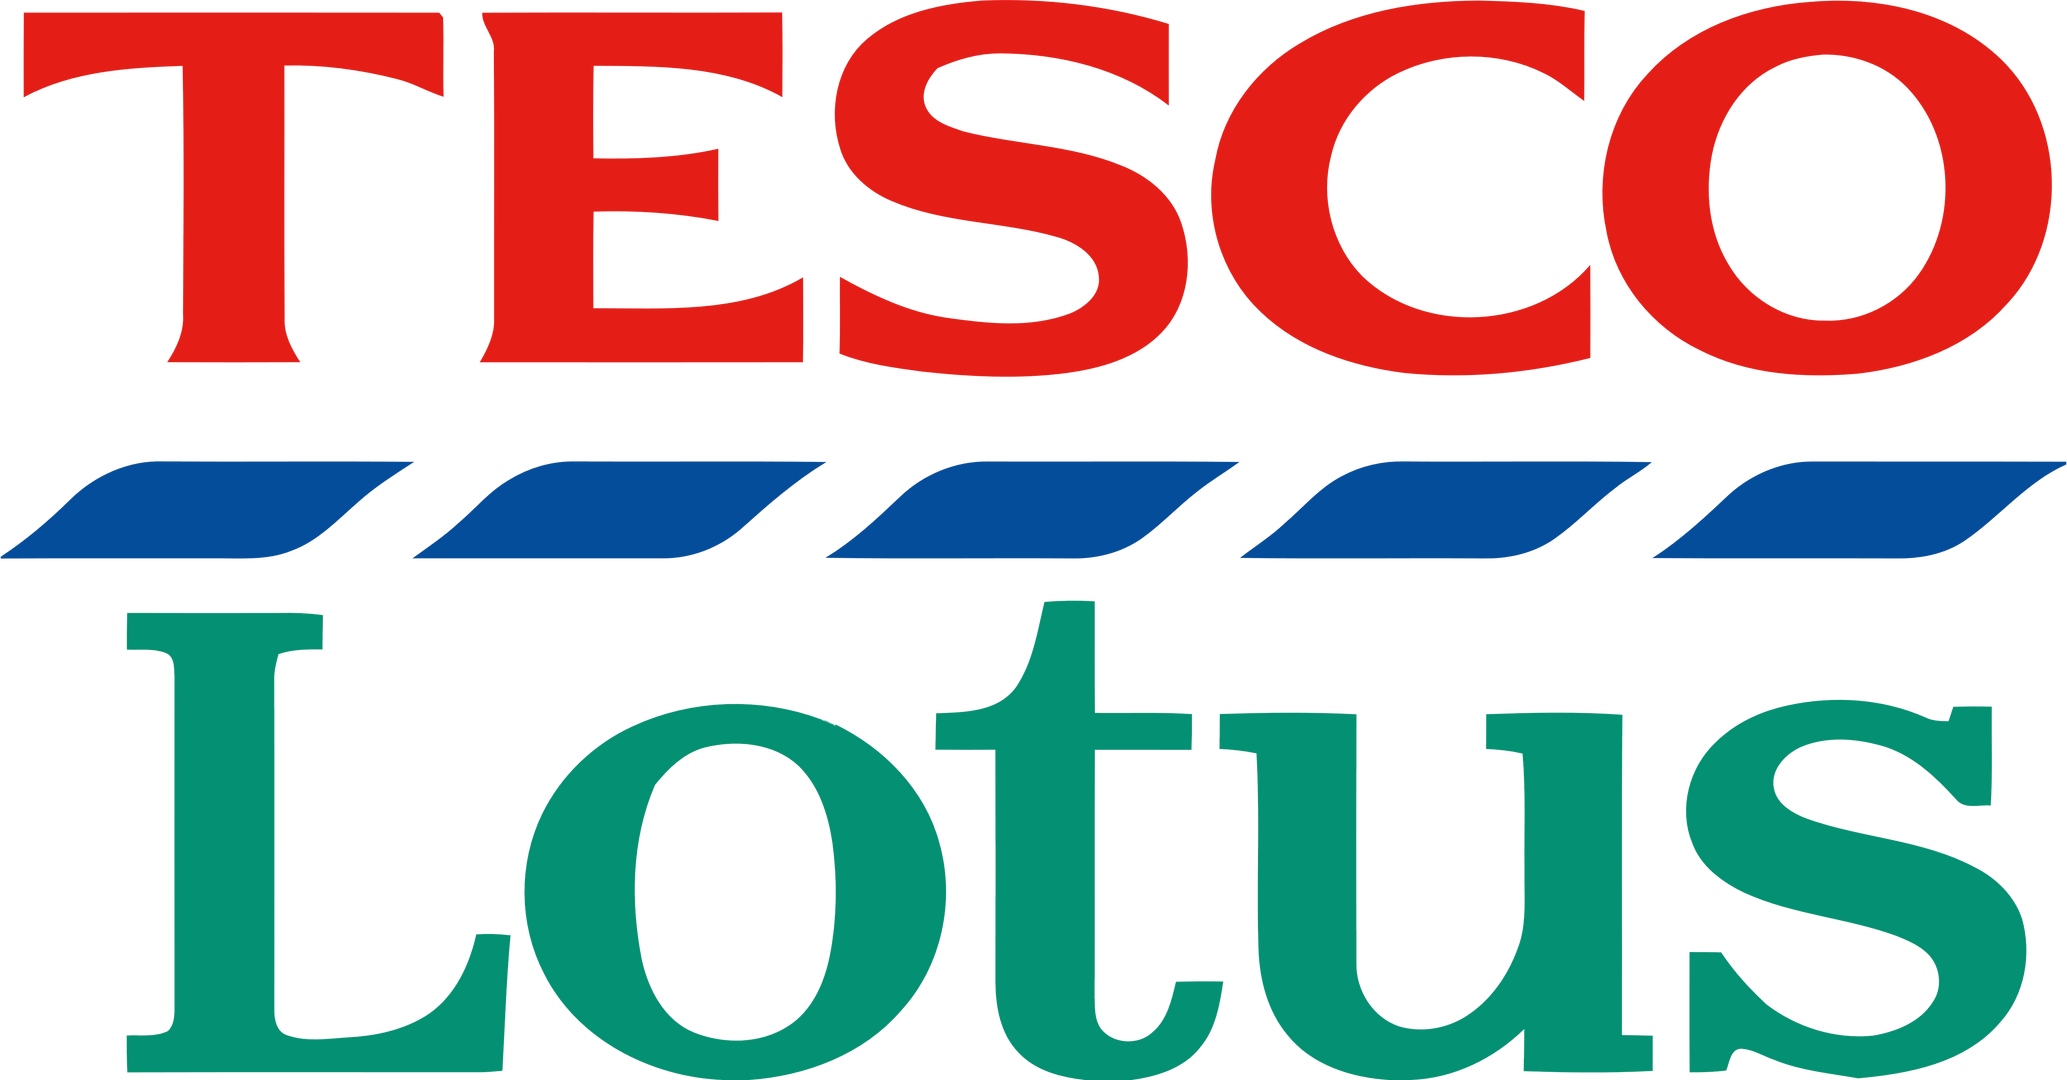 Tesco Lotus logo.png